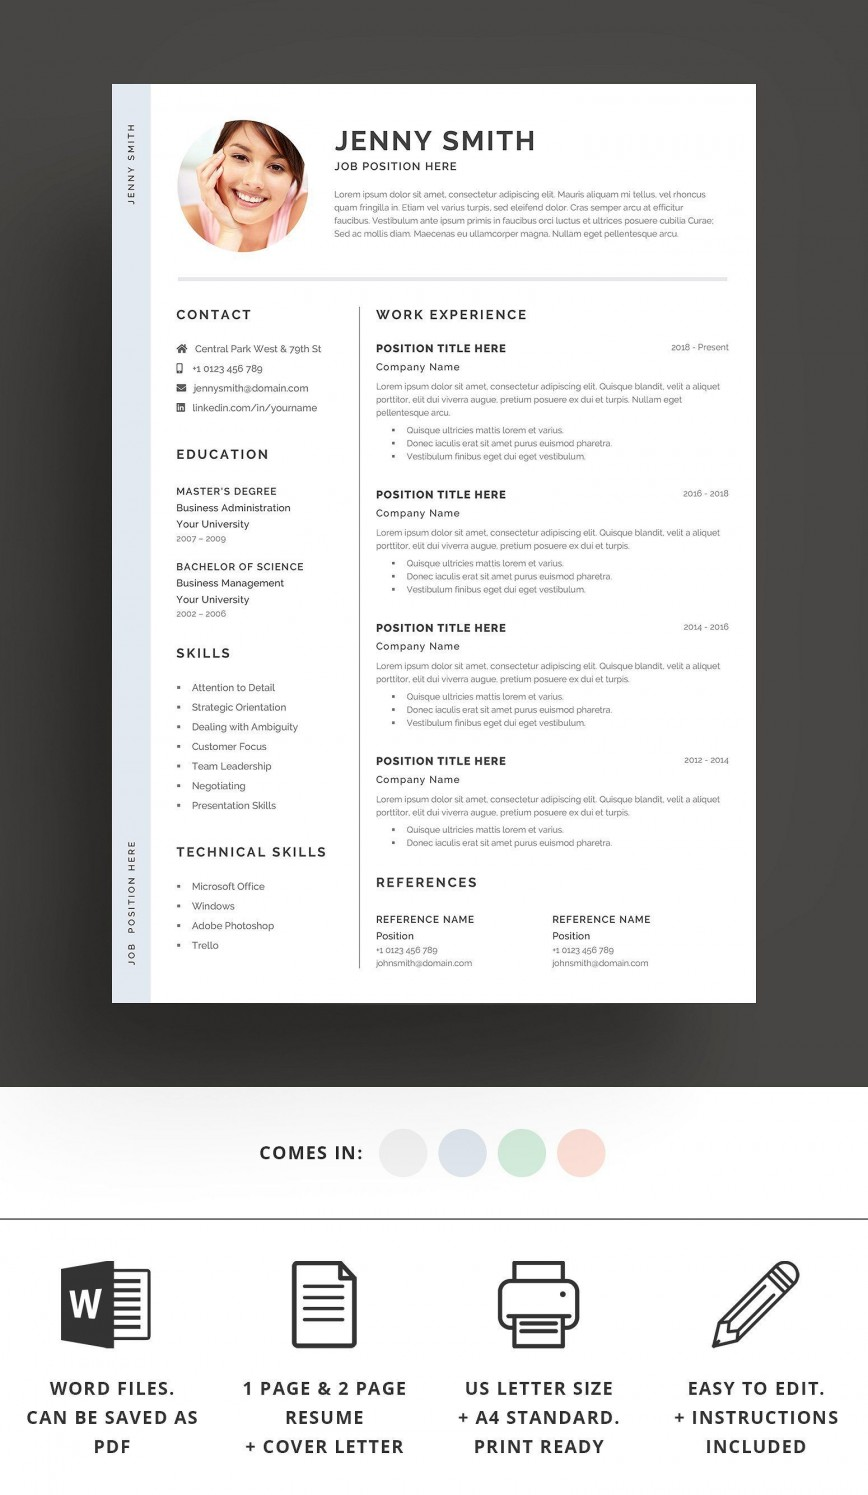 001 Impressive Resume Template On Word Picture  Wordpad Download 2010